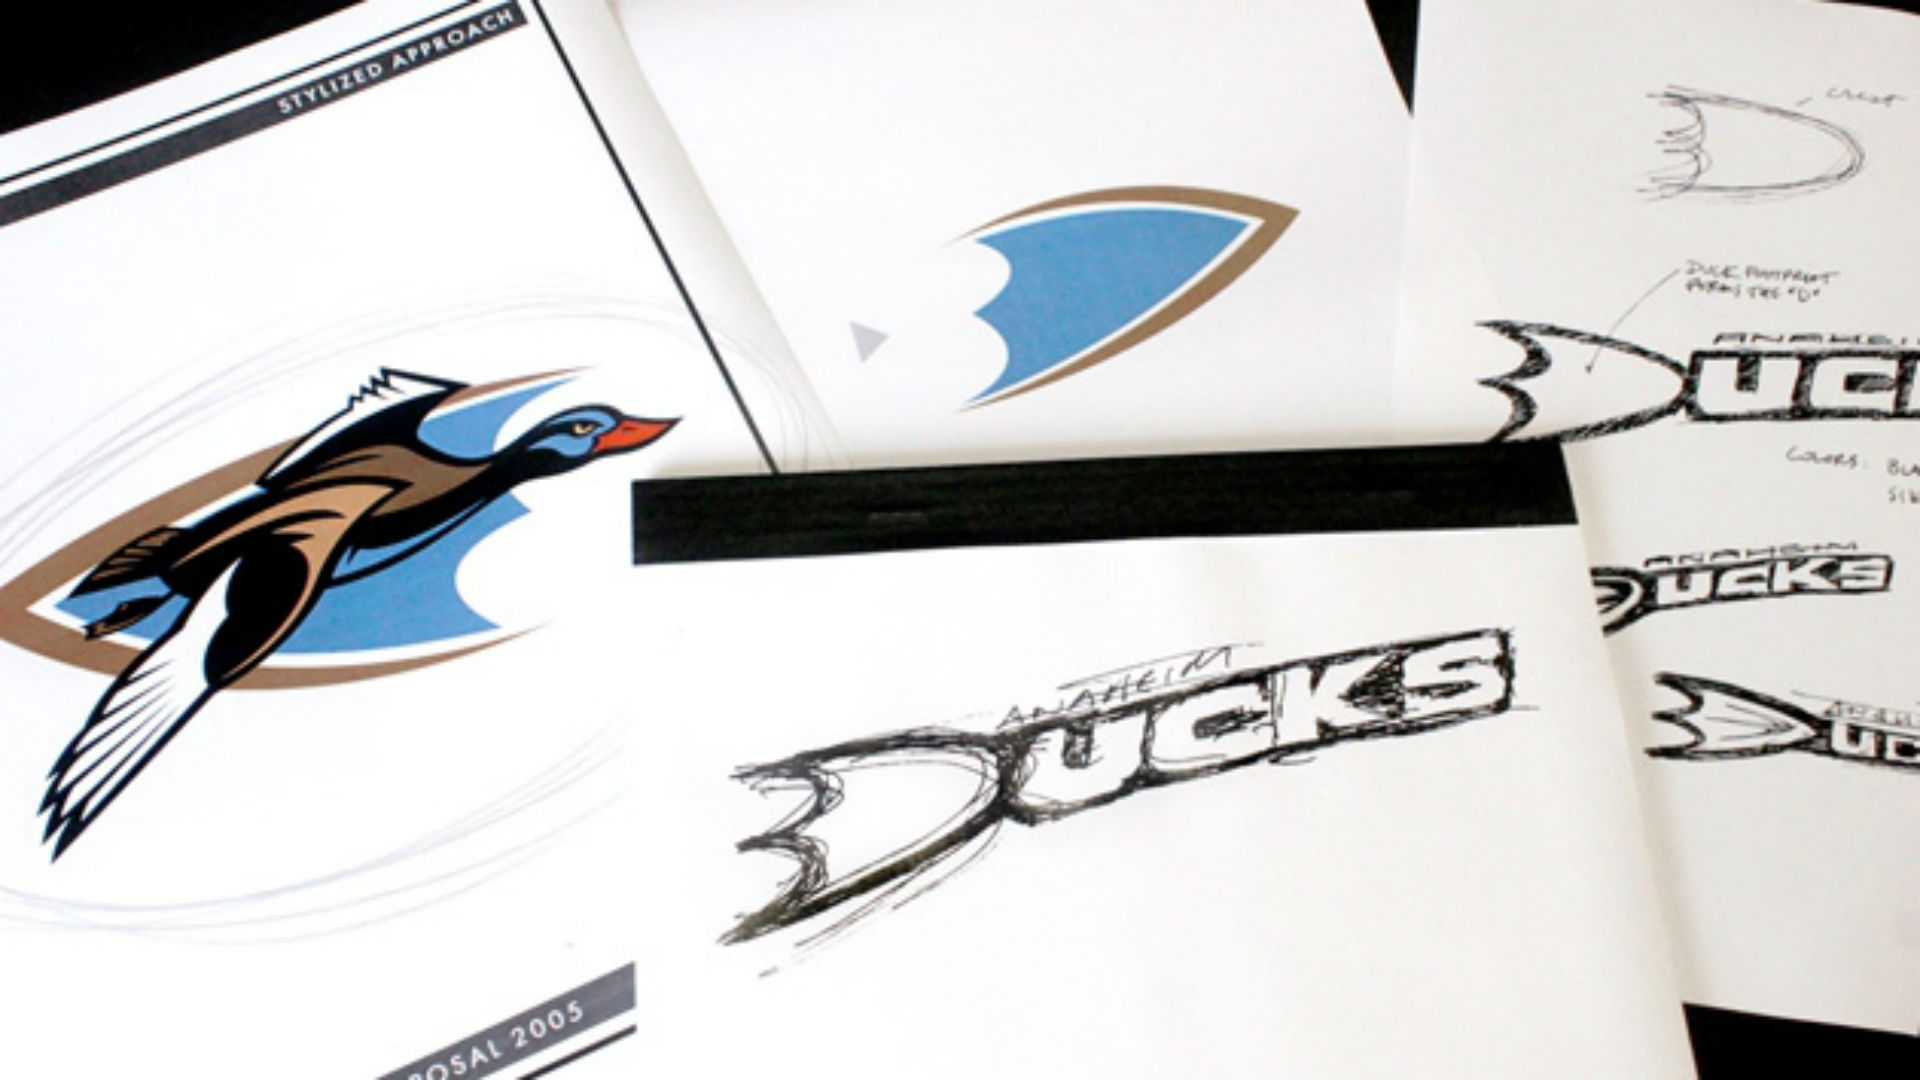 An inside look at ducks logo change from 2007 their stanley cup an inside look at ducks logo change from 2007 their stanley cup year nhl sporting news biocorpaavc Images